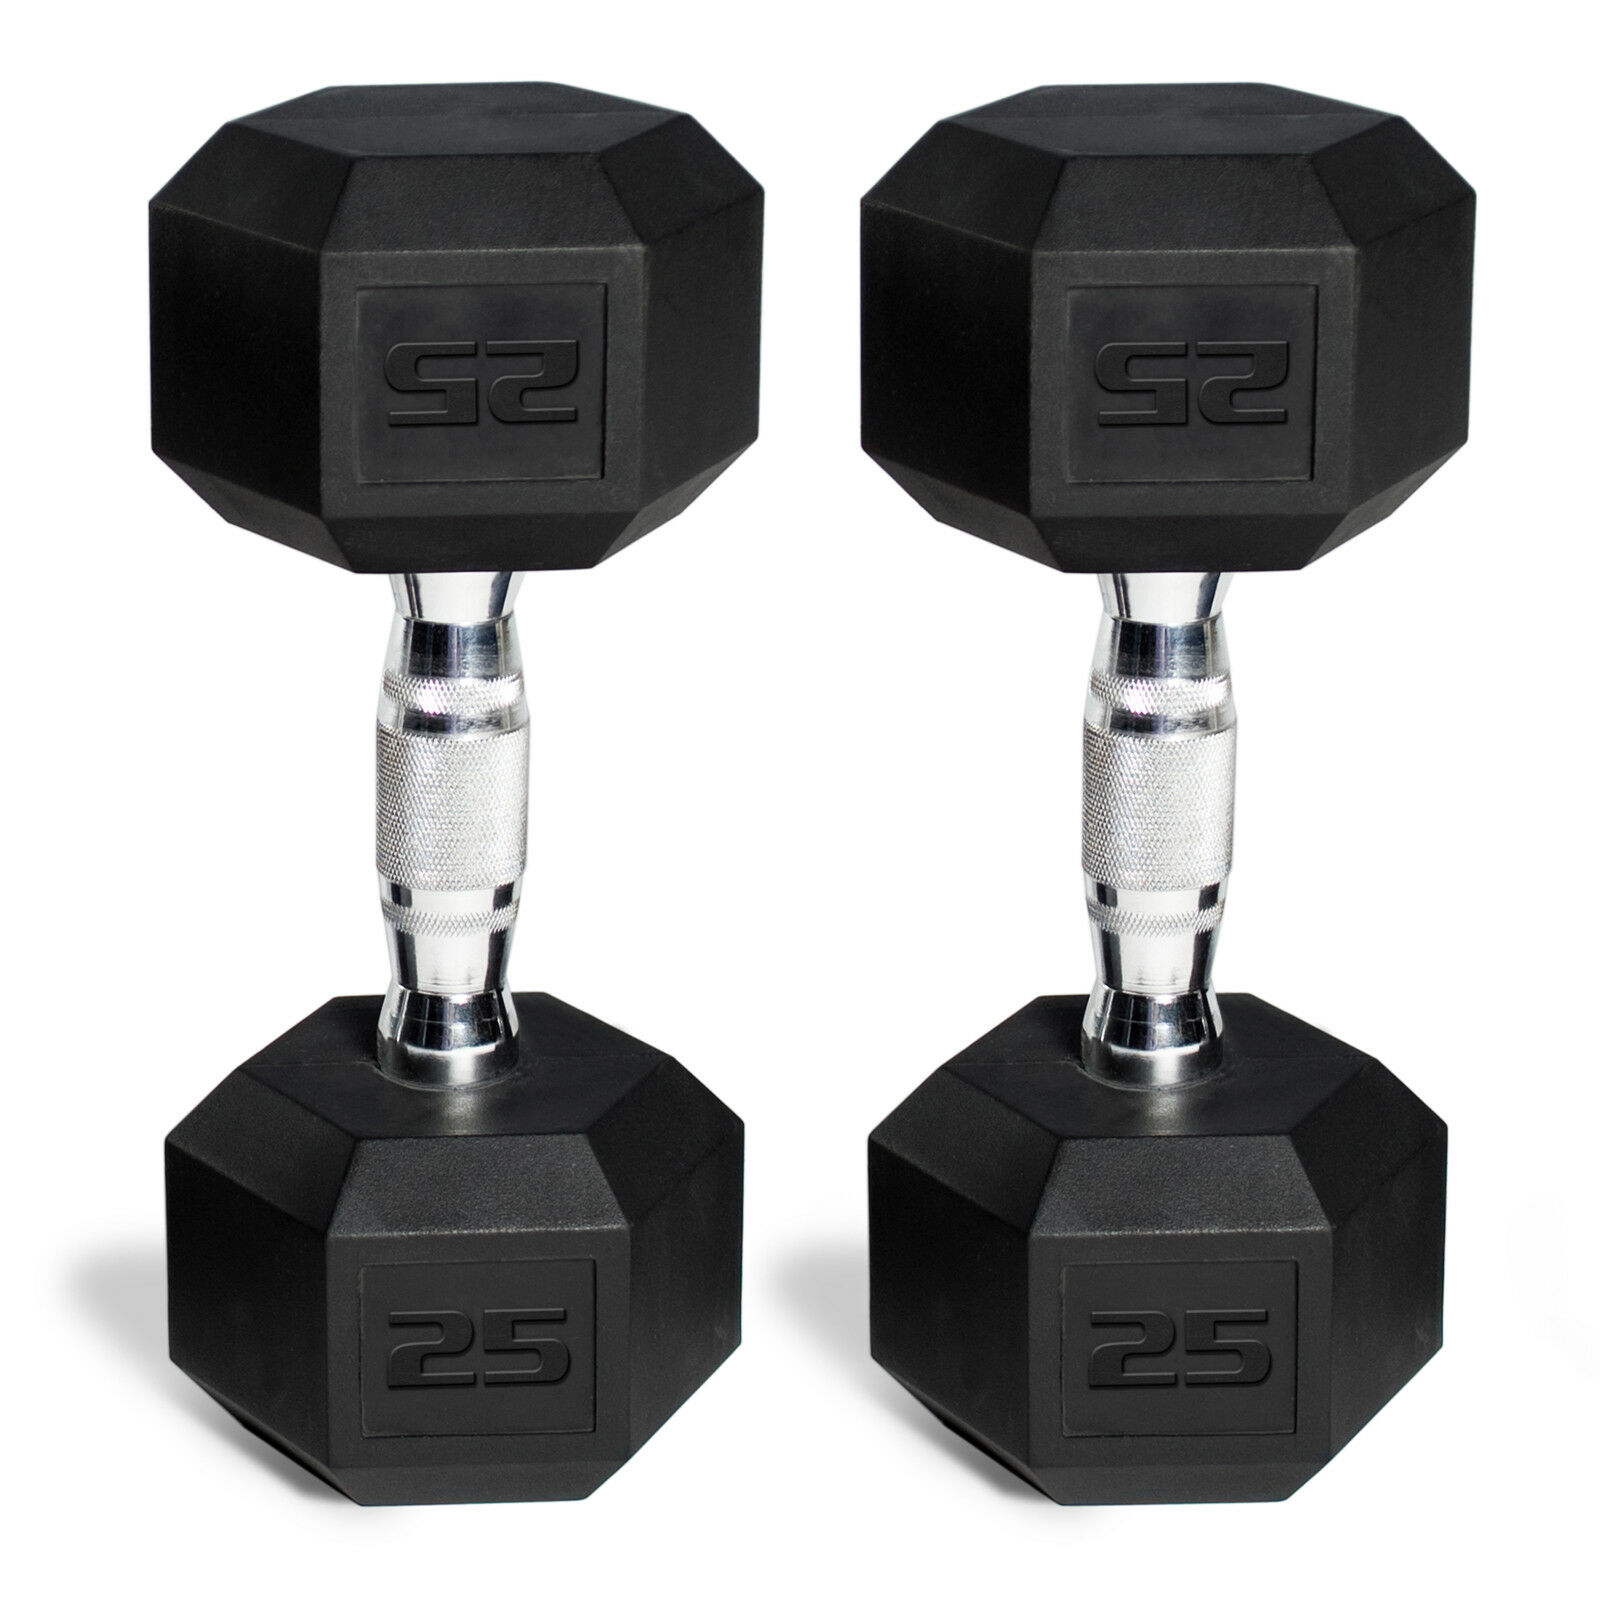 Set of 2 CAP Barbell Rubber-Coated Hex Dumbbells 25Lb. Home Gym Workout Training